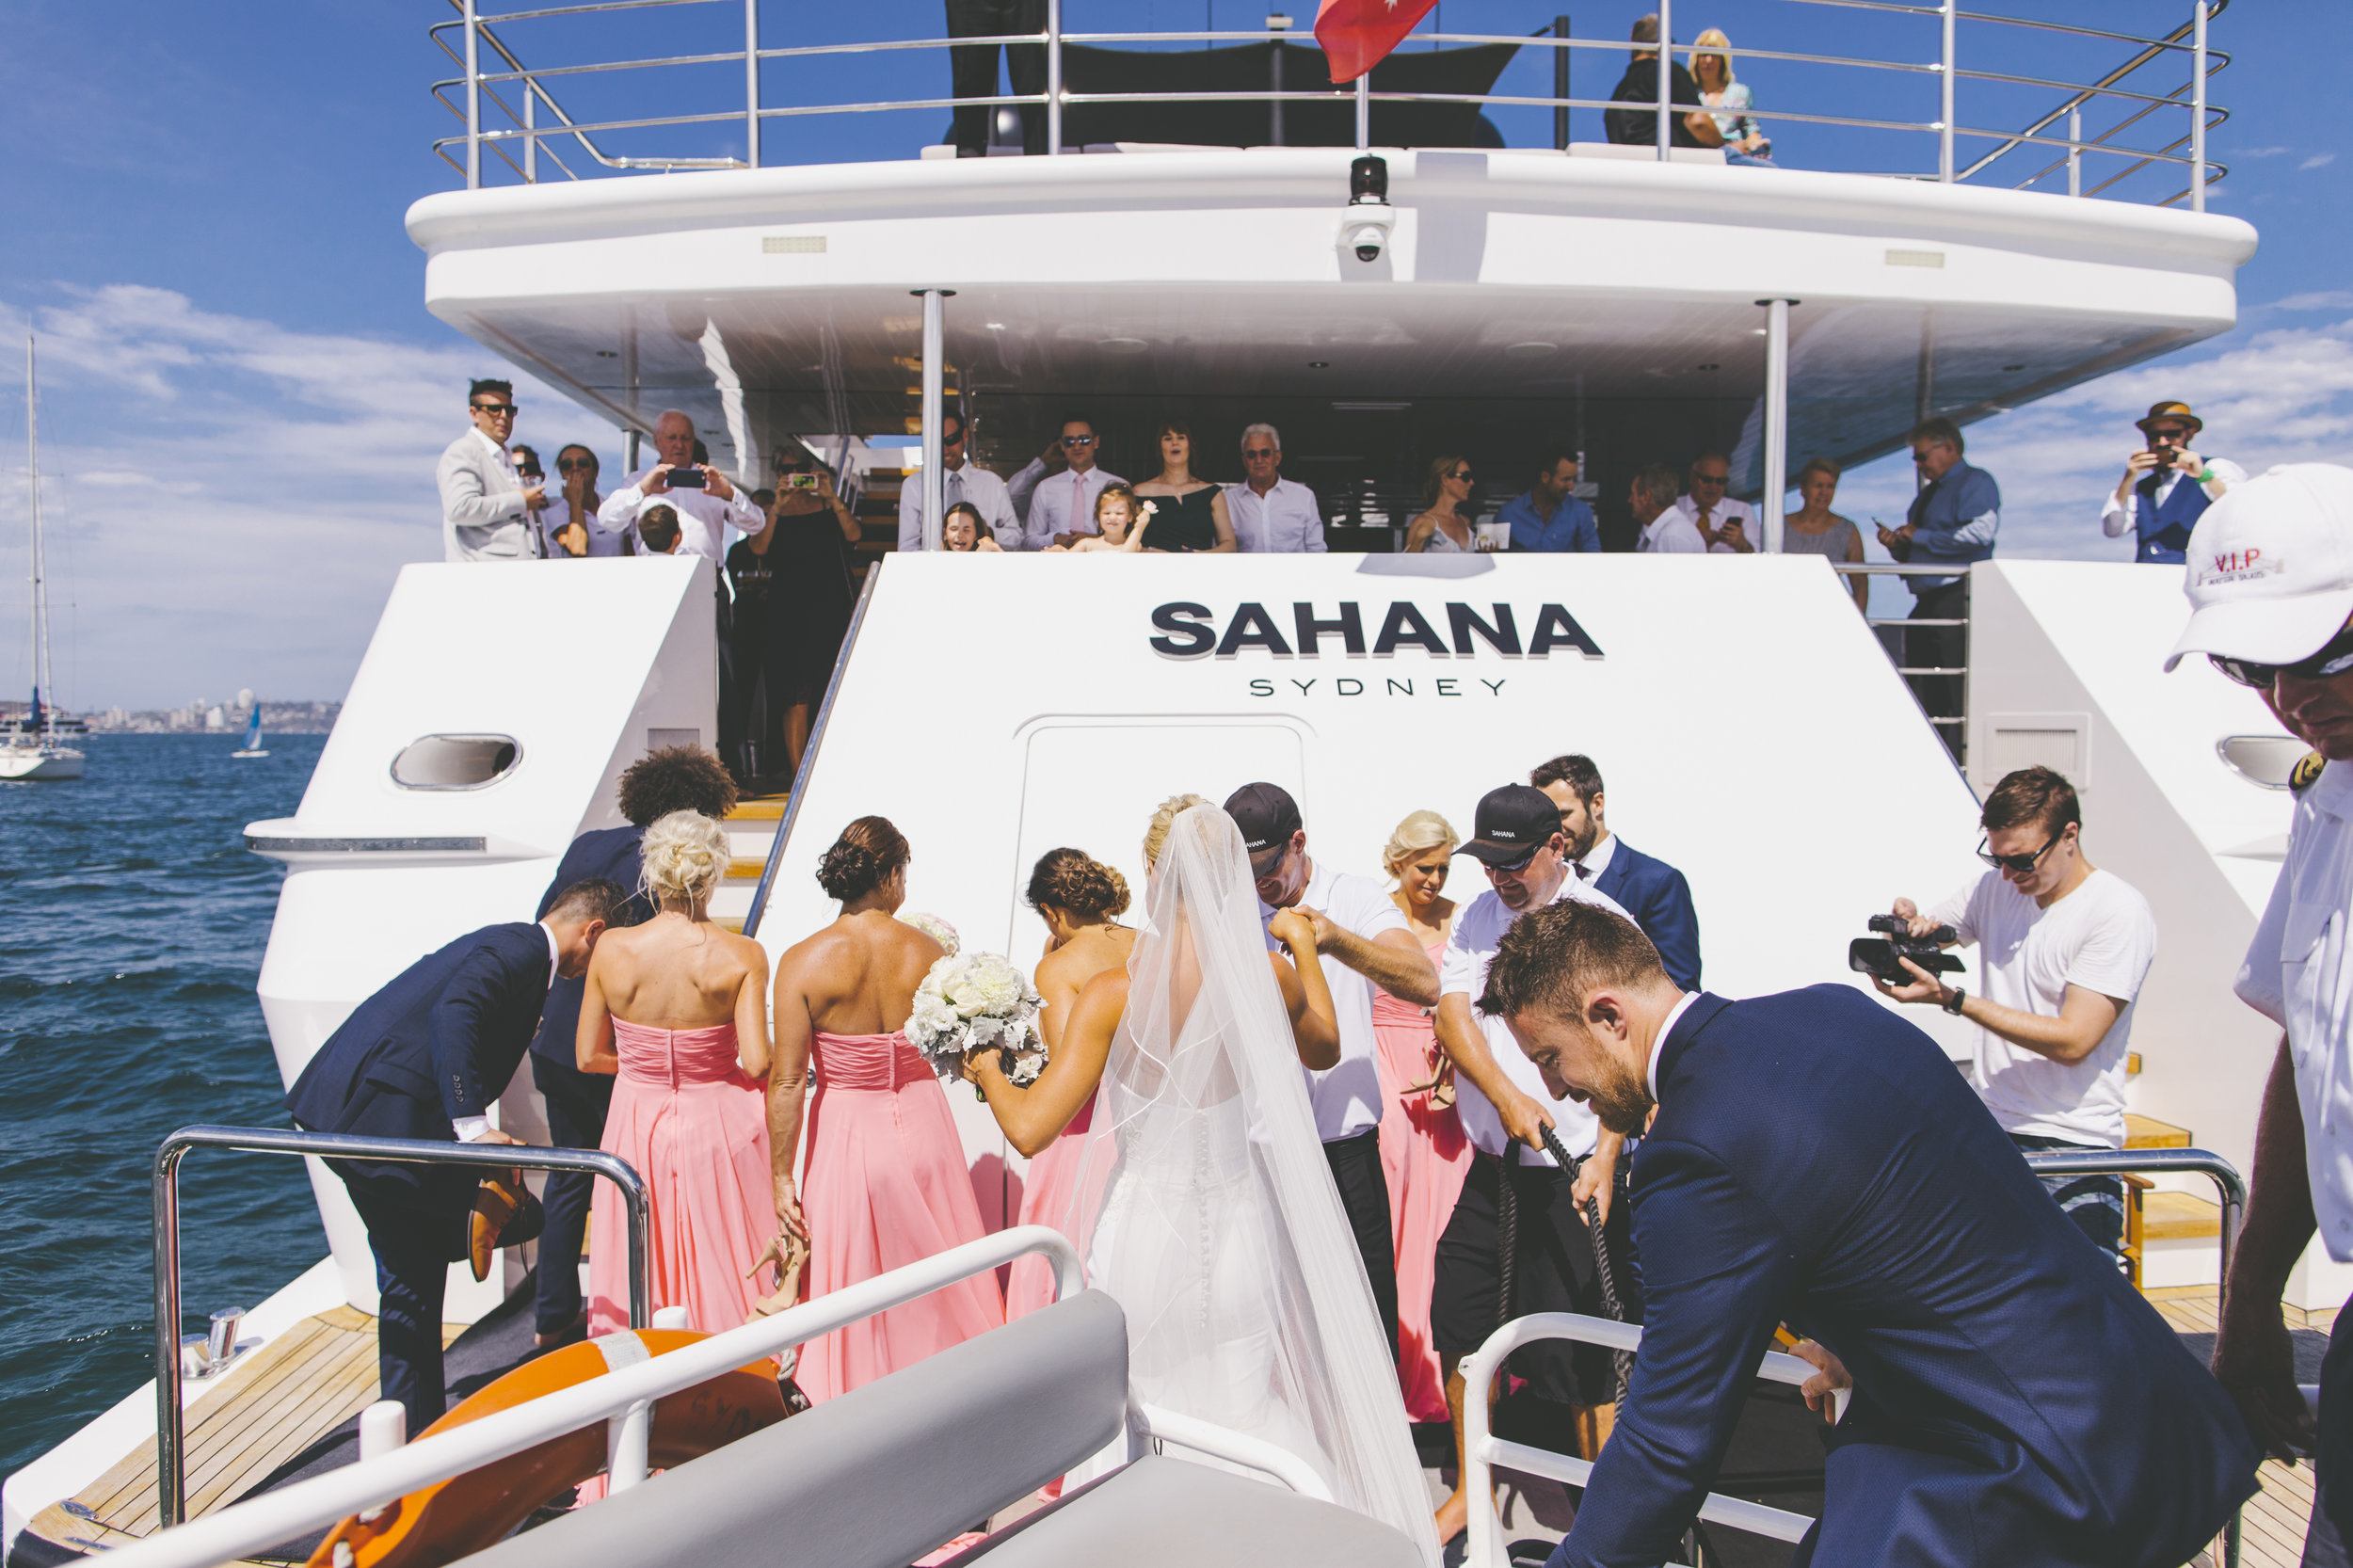 Bride and Groom getting on the boat at their wedding reception